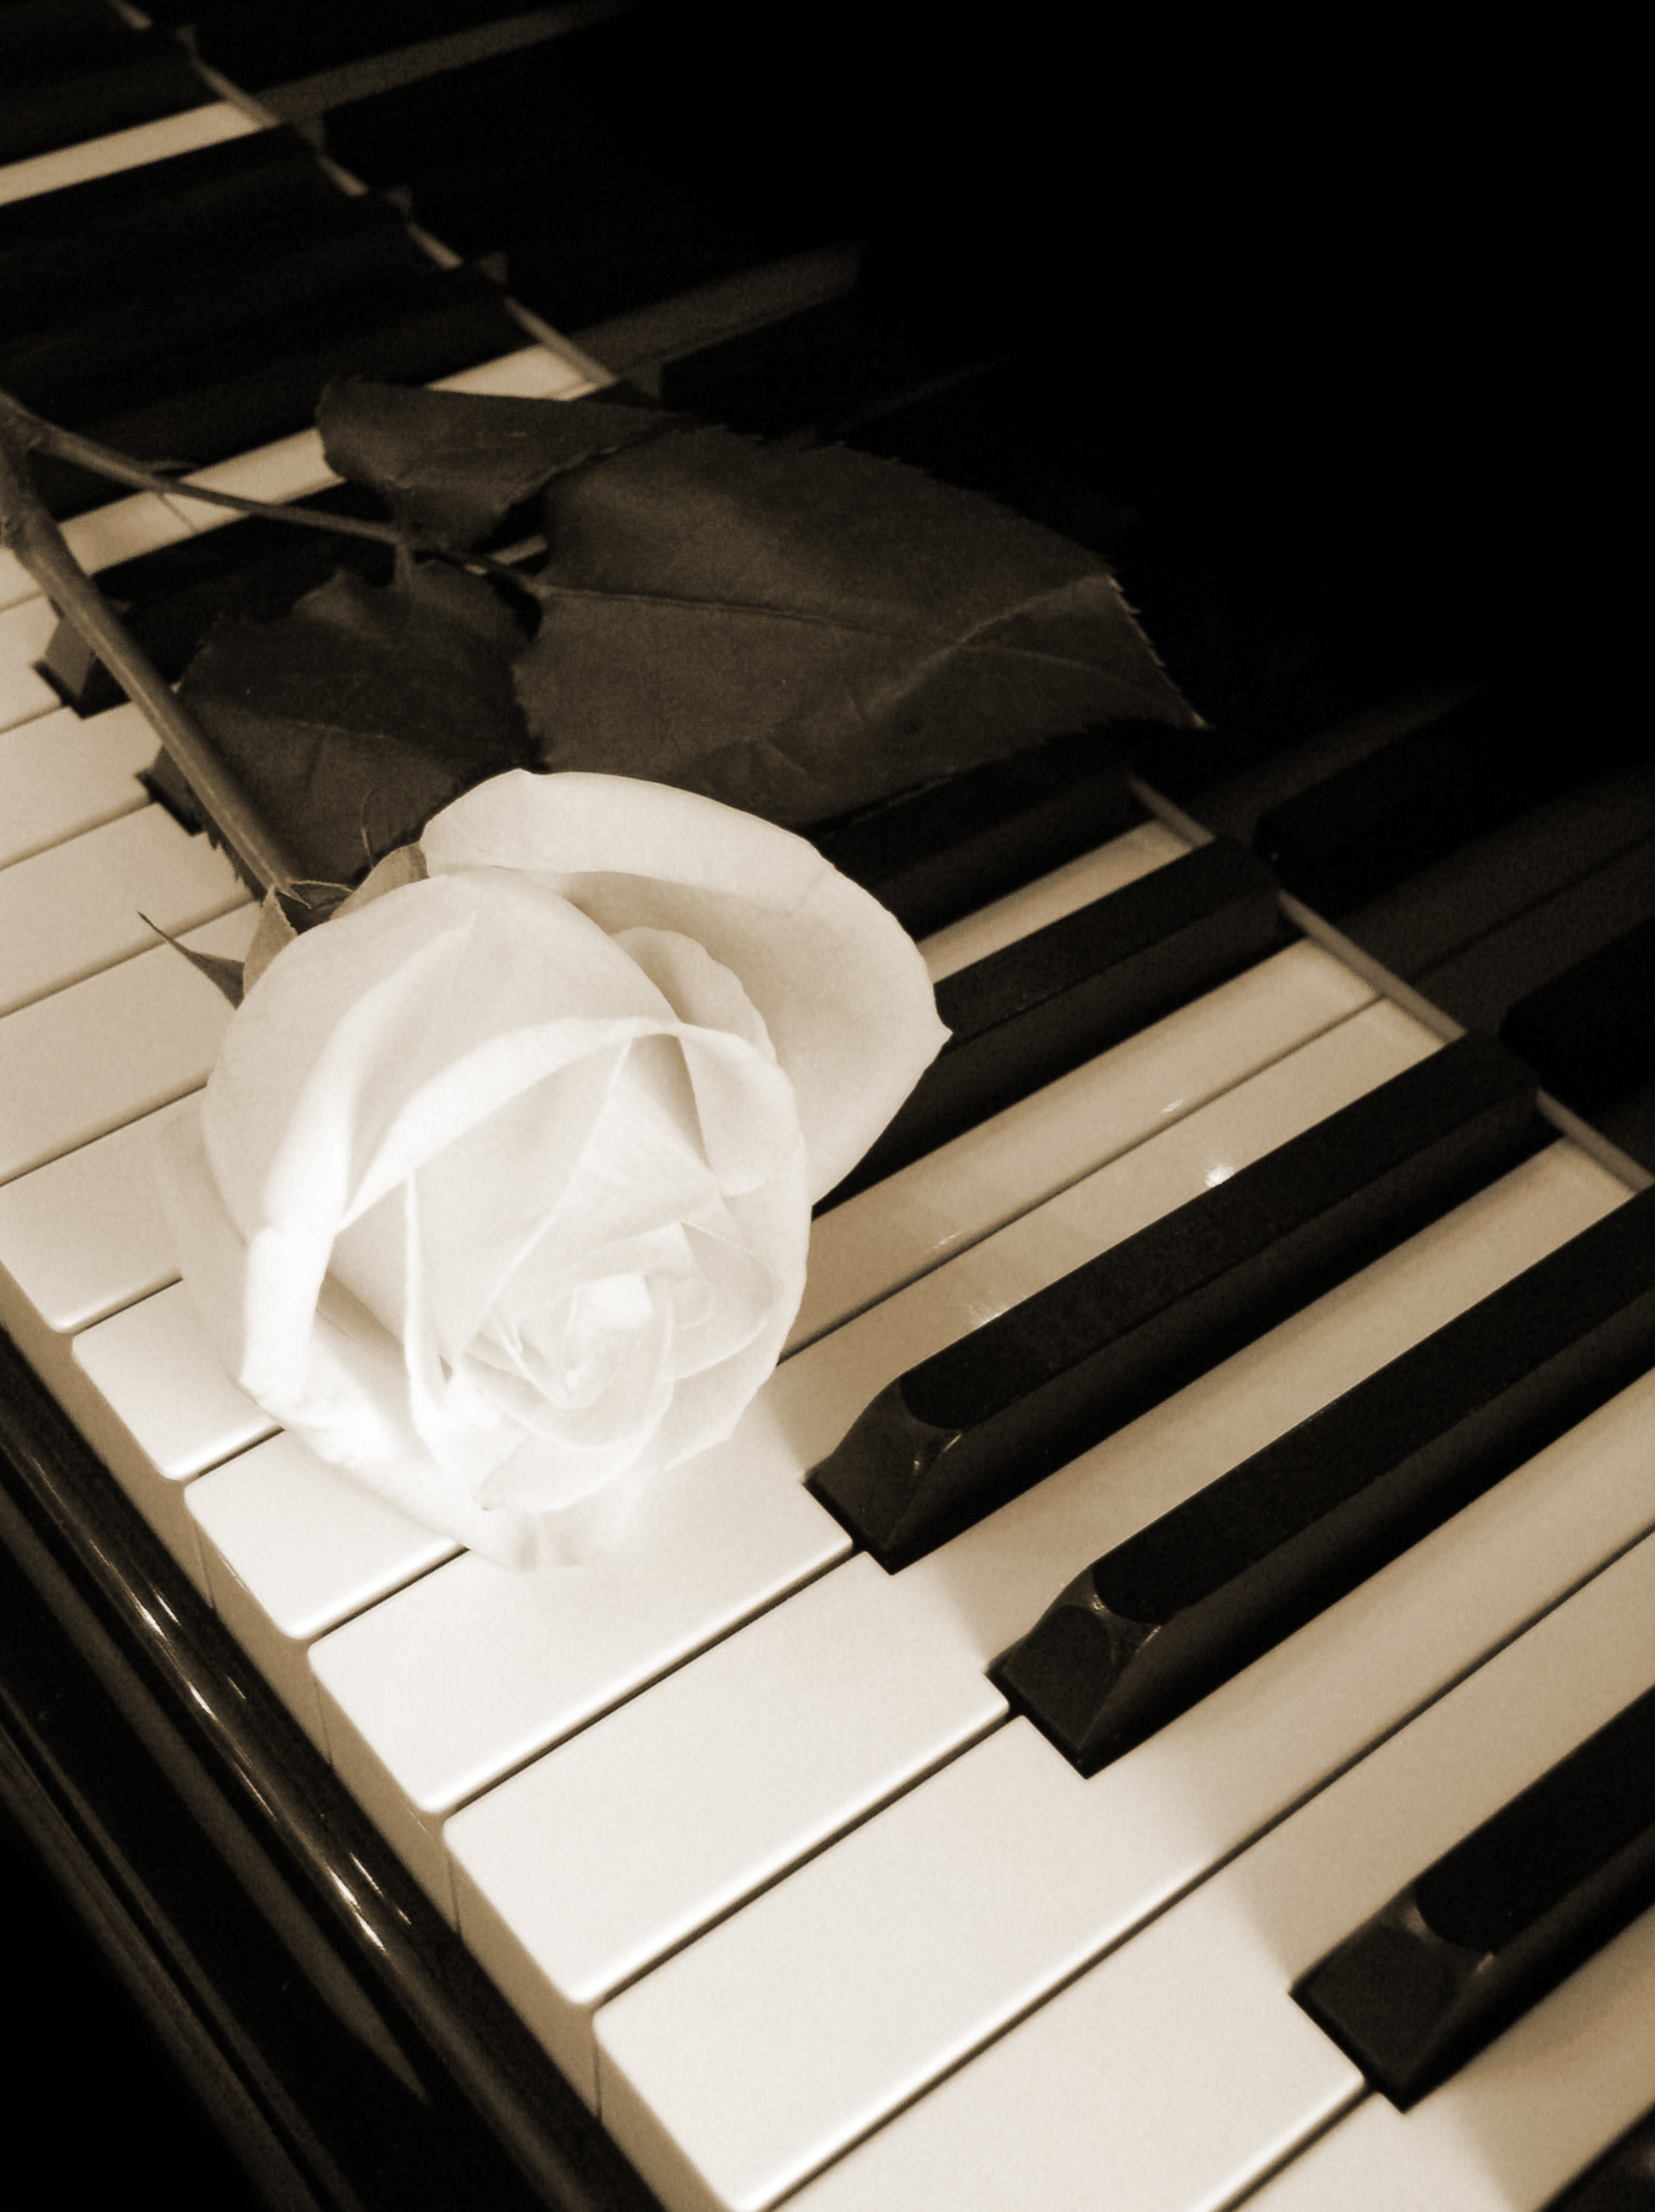 And White Photography Roses On Pianos Black and white photographyPiano With Rose Photography